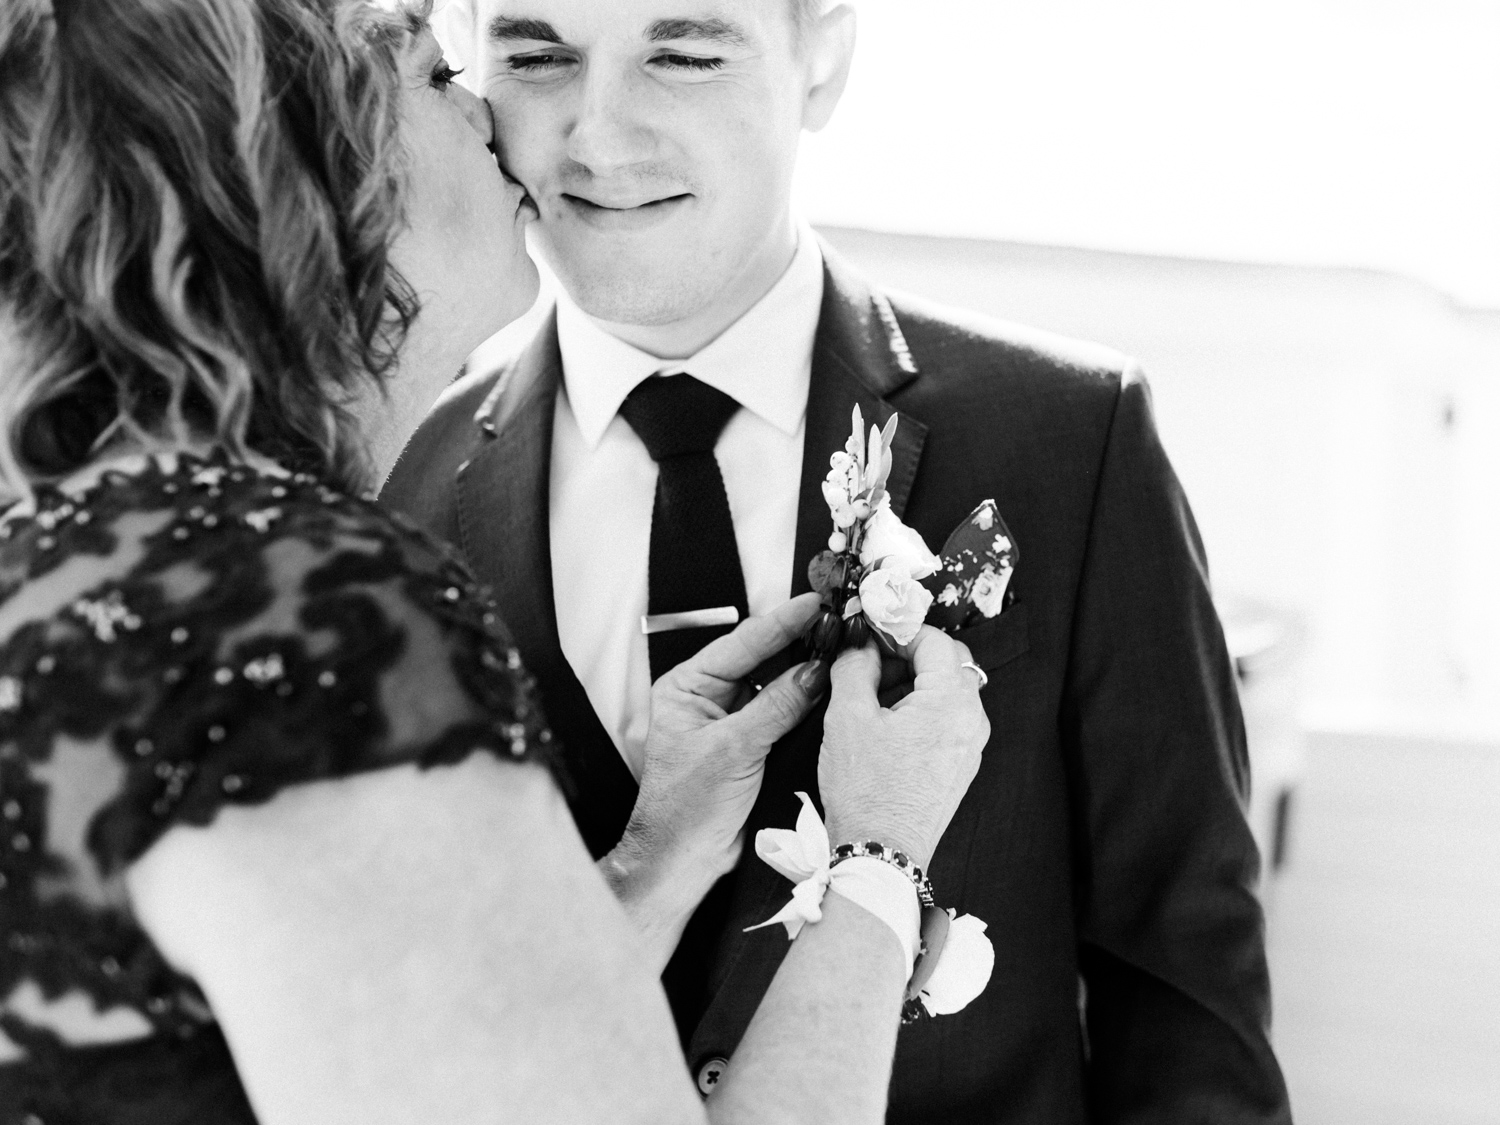 A groom's mother kisses his cheek while fastening his boutonniere